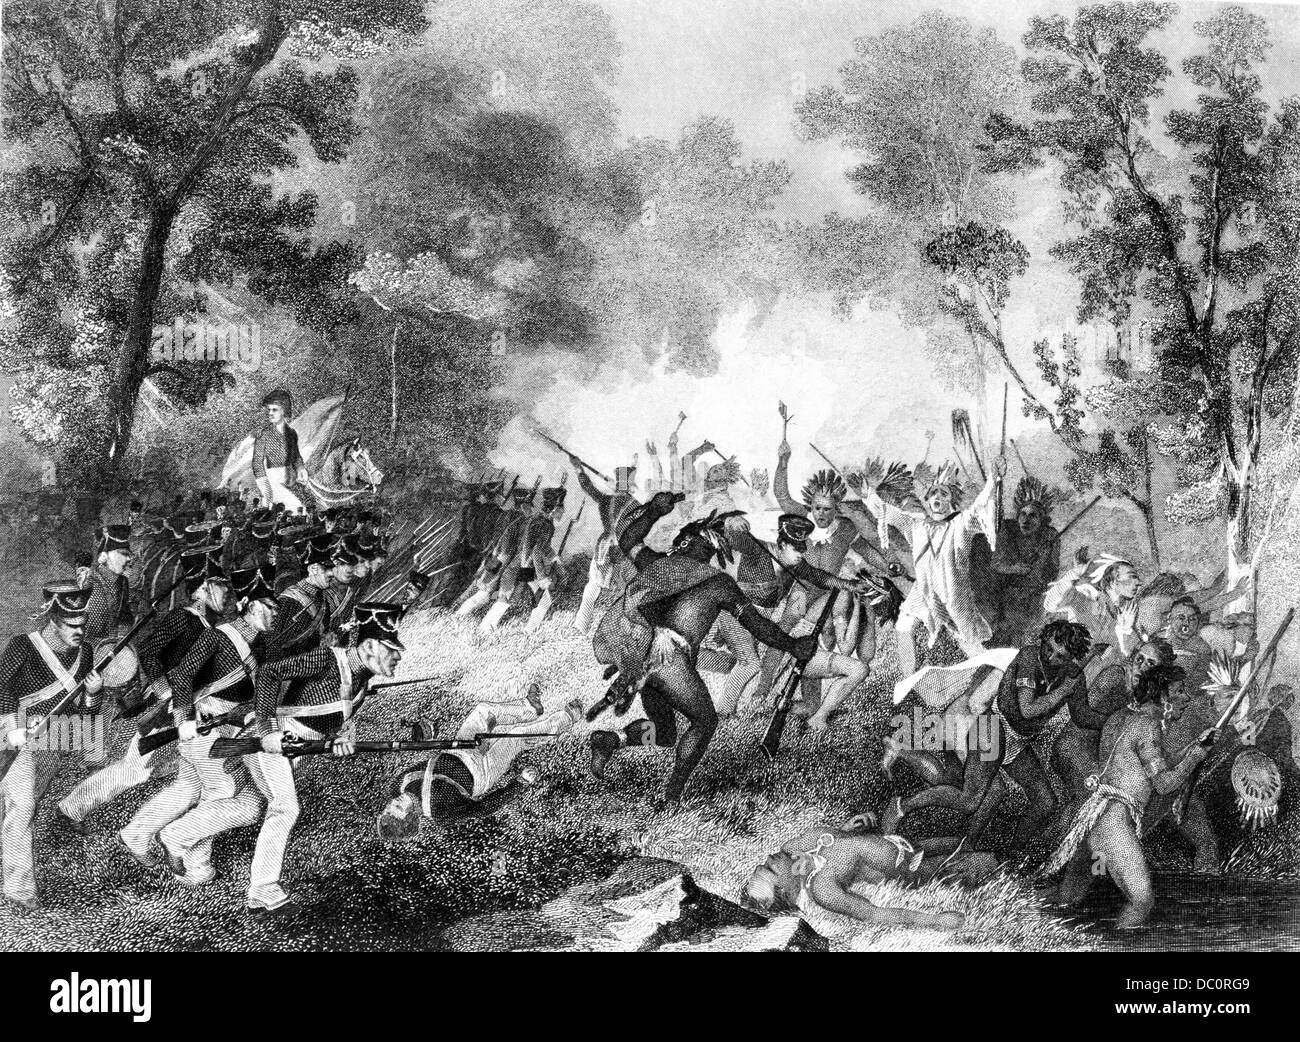 battle of tippecanoe The battle of tippecanoe by r taylor tens-kwau-ta-waw, the prophet (lac) while not really a battle of the war of 1812, the battle of tippecanoe was none the less significant in the long term upon arriving at the site, harrison warned his men of the possible treachery of the prophet the troops were placed in a.